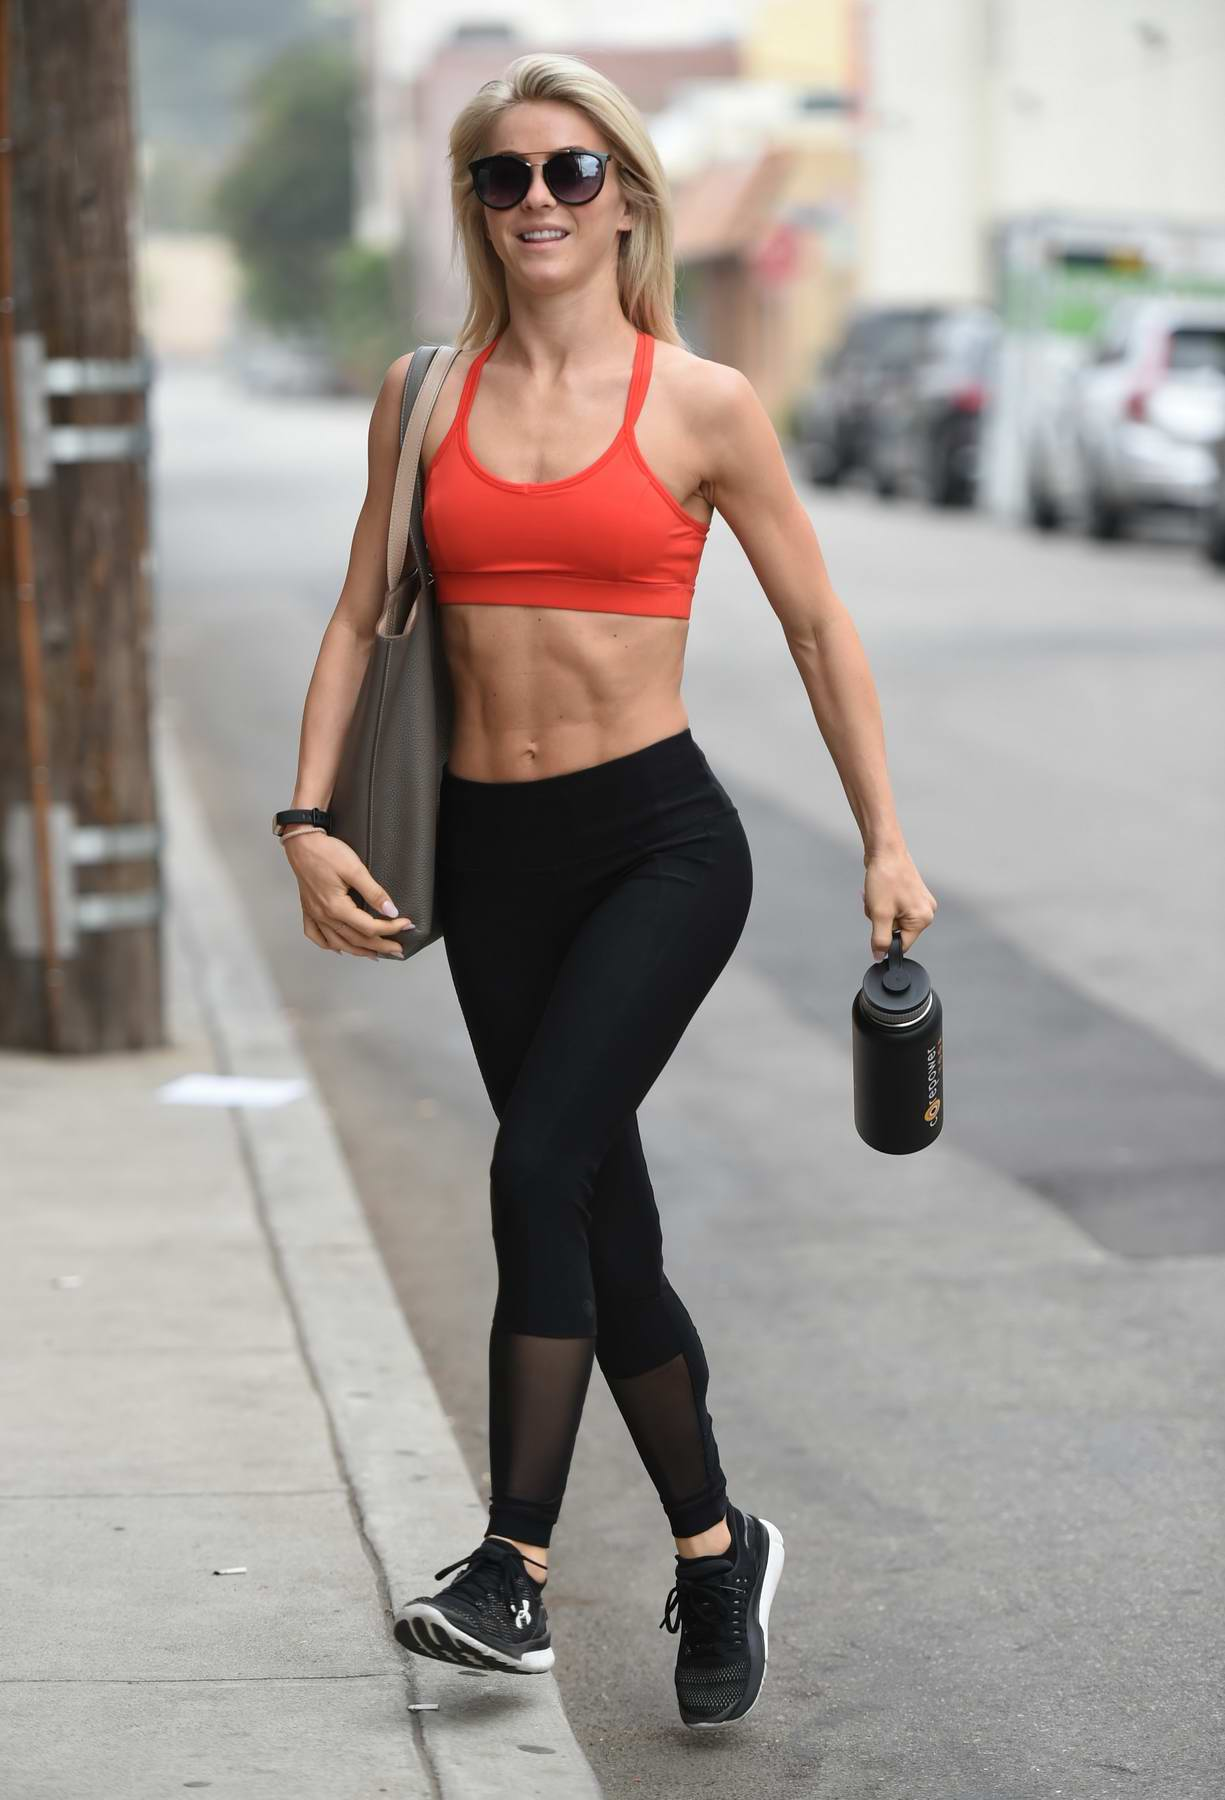 Julianne Hough leaving the Tracy Anderson Gym in Los Angeles